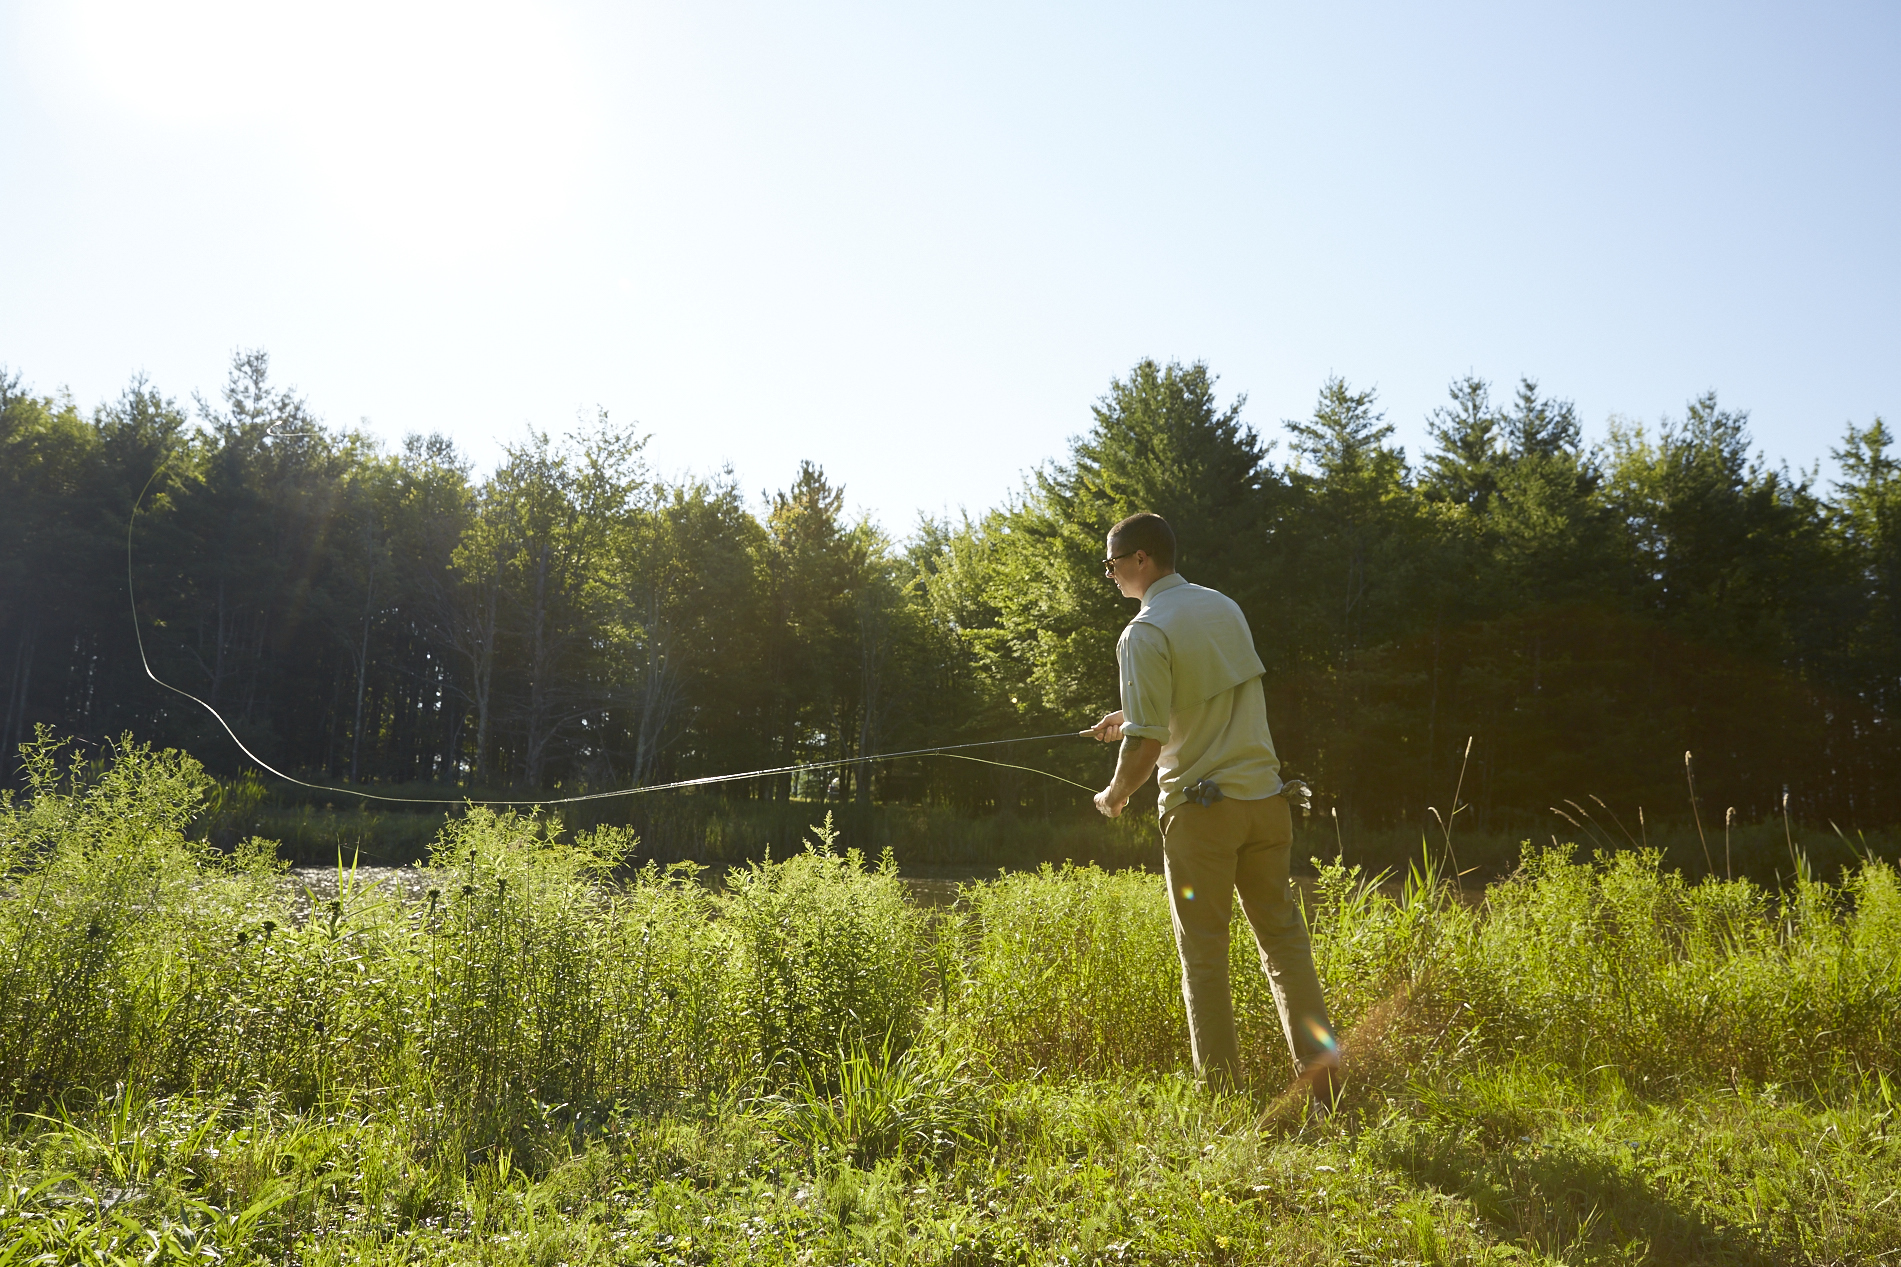 A man fishes at a river at a tentrr campsite in the US